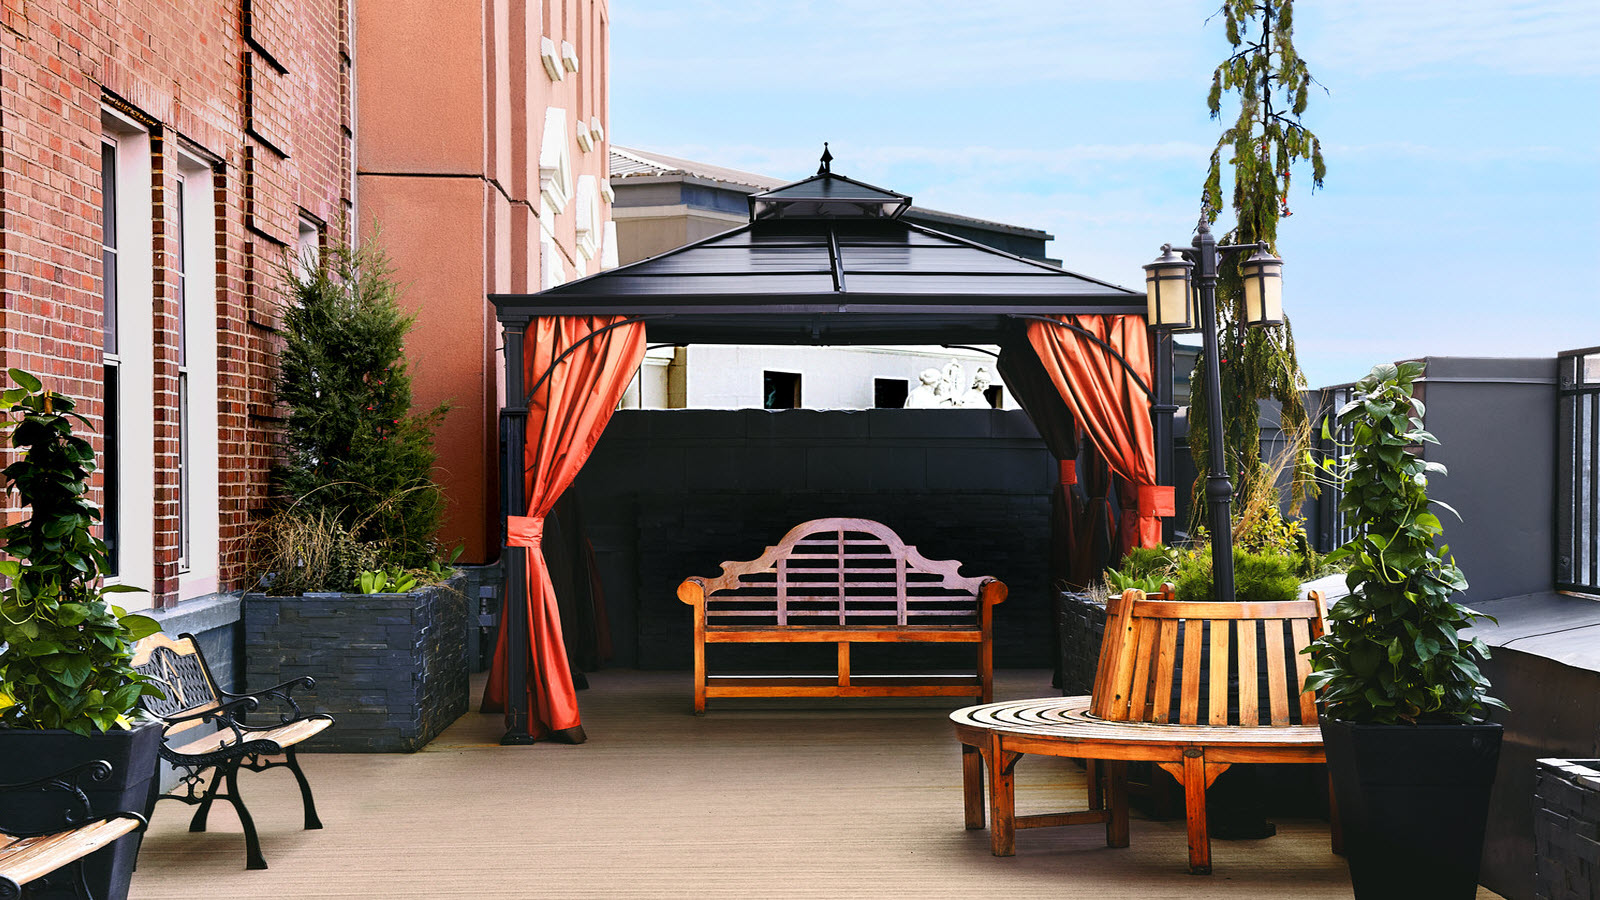 Event Venues Halifax - Outdoor Space